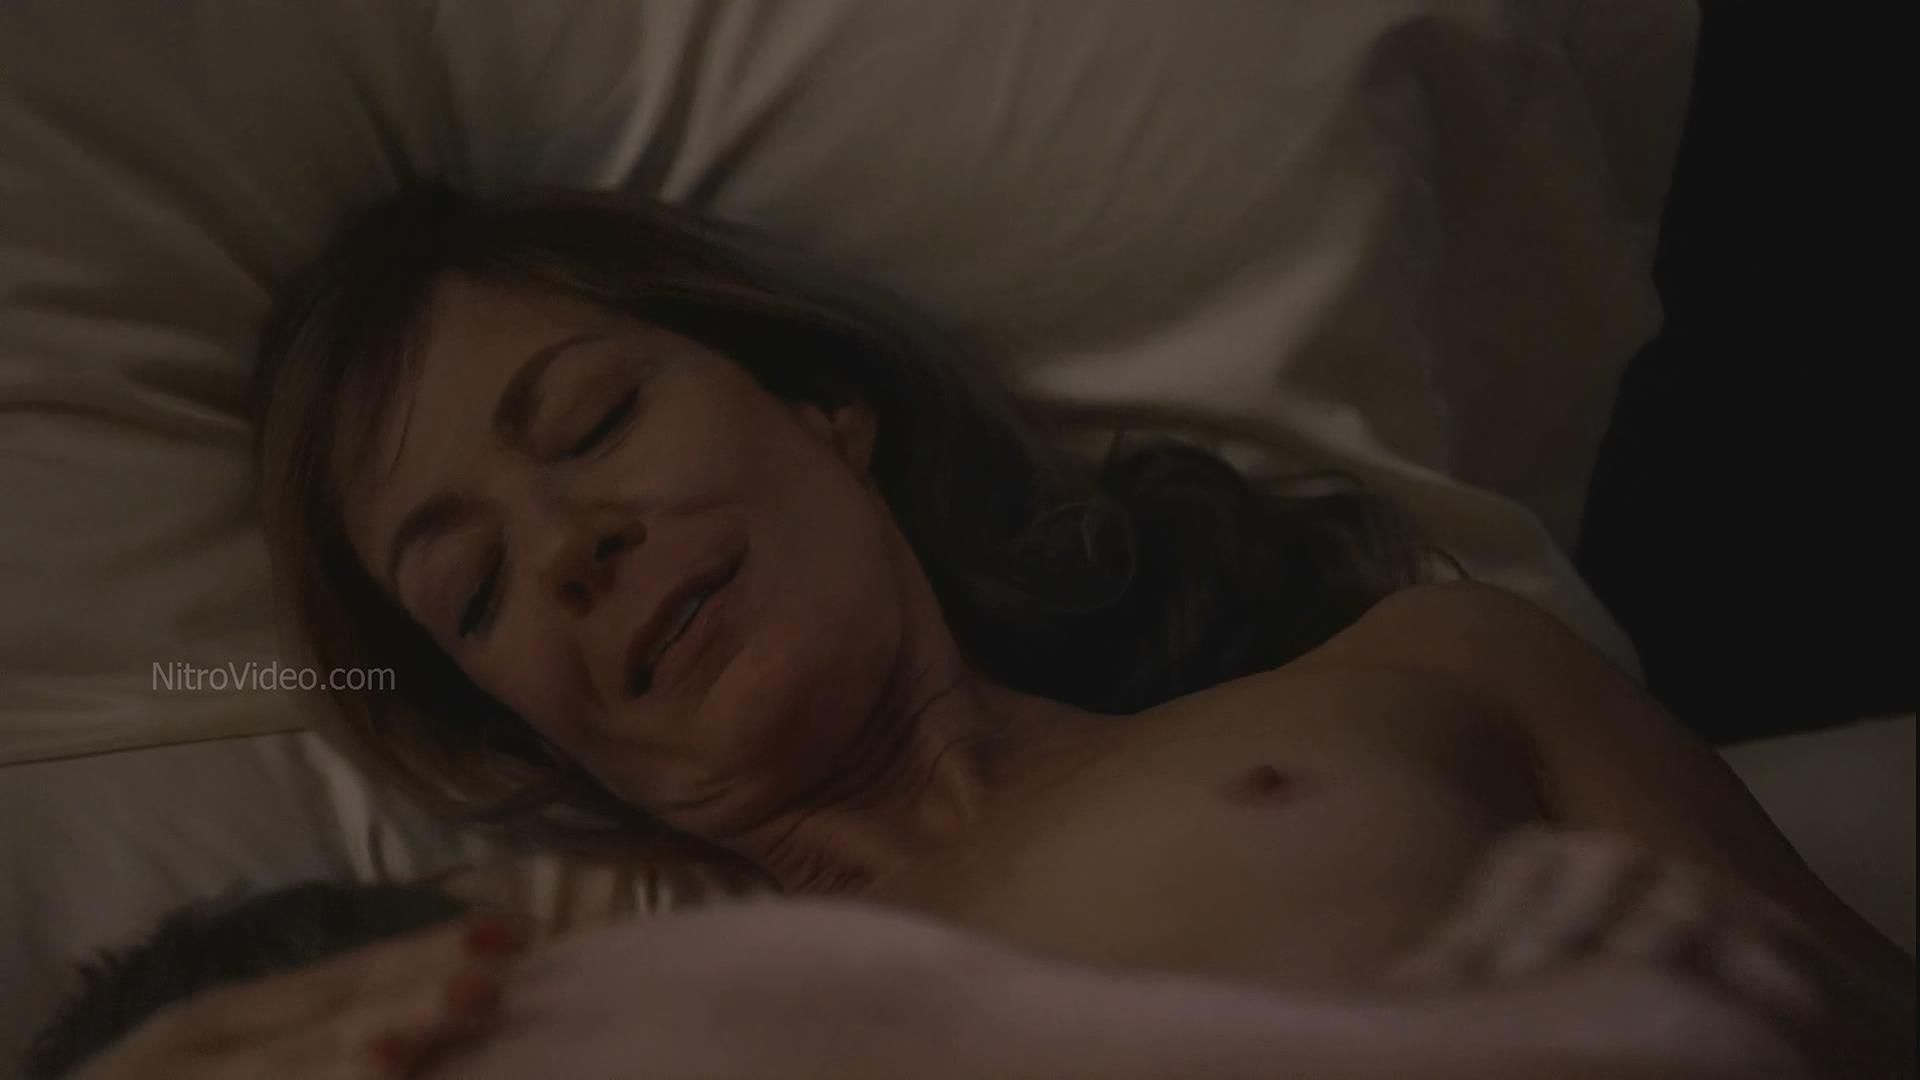 Alison Sex Tape alison janney naked - naked images. comments: 1